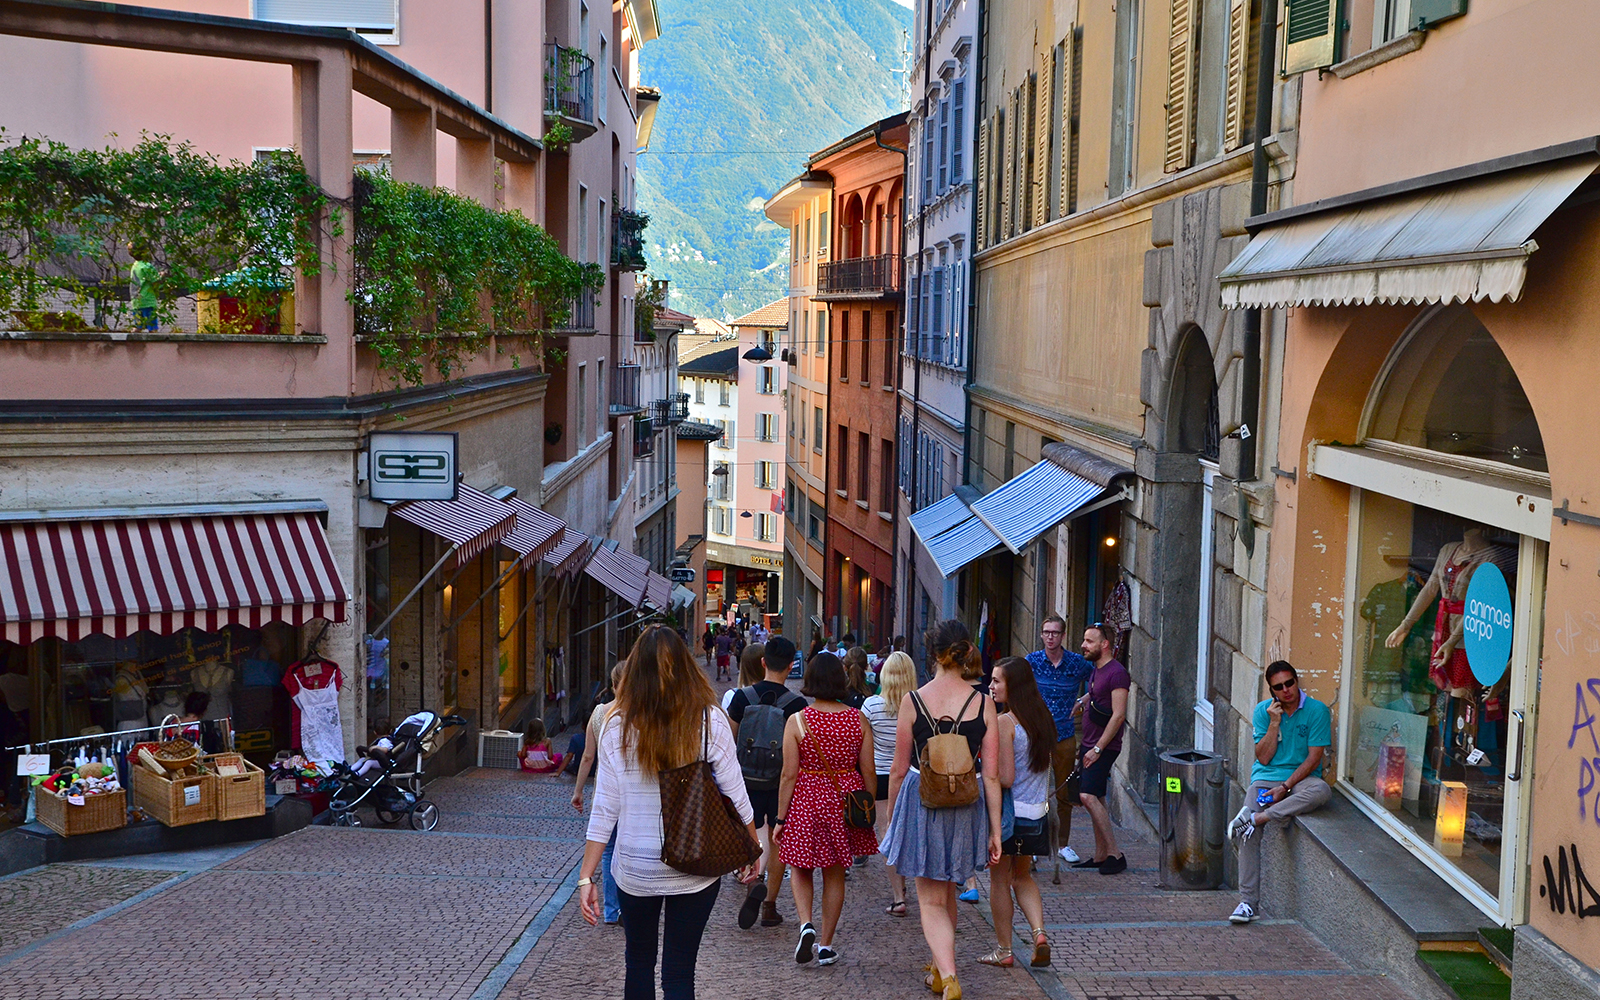 74ad9d16 50d0 4a1b a7e1 a133cf41a511 8933 milan lake como bellagio and lugano day trip frommilan 03